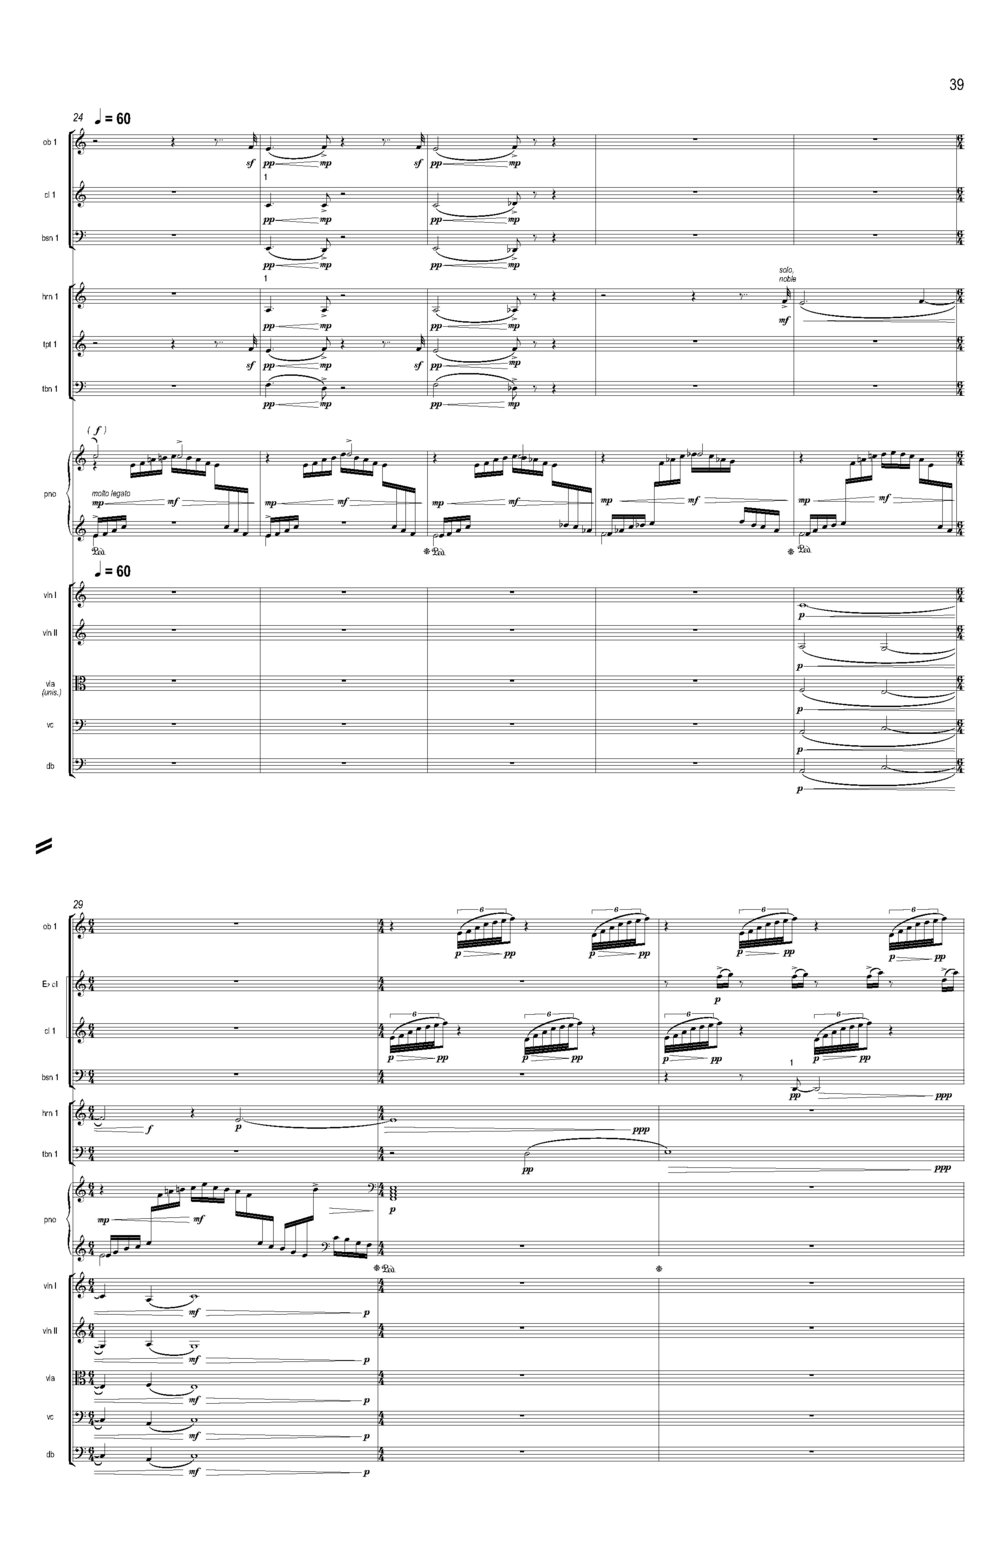 Ciach_Collective Uncommon REVISED_Full Score (Feb 2017)_Seite_45.jpg